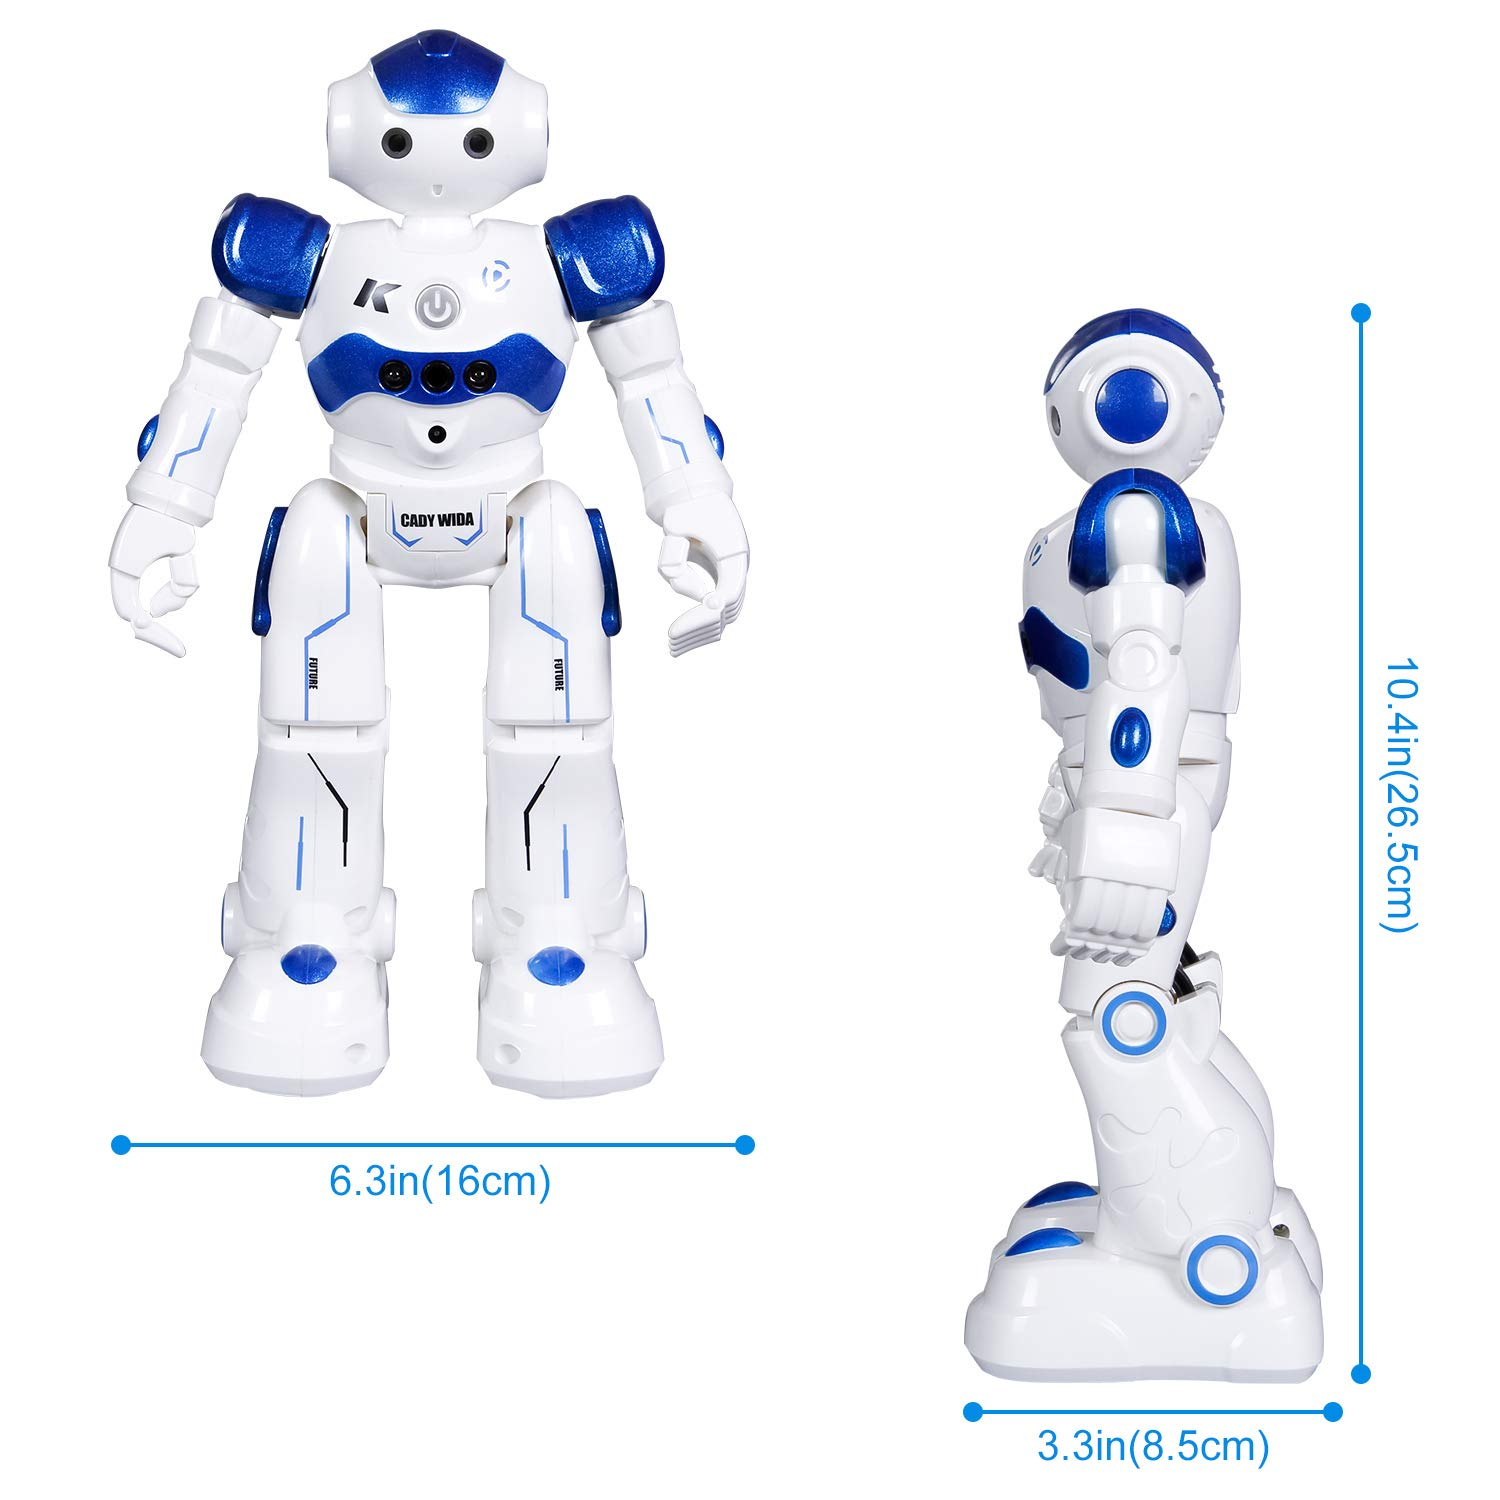 SGILE Remote Control Robot, RC Programmable Educational Robot for Kids Birthday Gift Present, Interactive Walking Singing Dancing Smart Intelligent Robotics for Kids Boy, Blue by SGILE (Image #7)